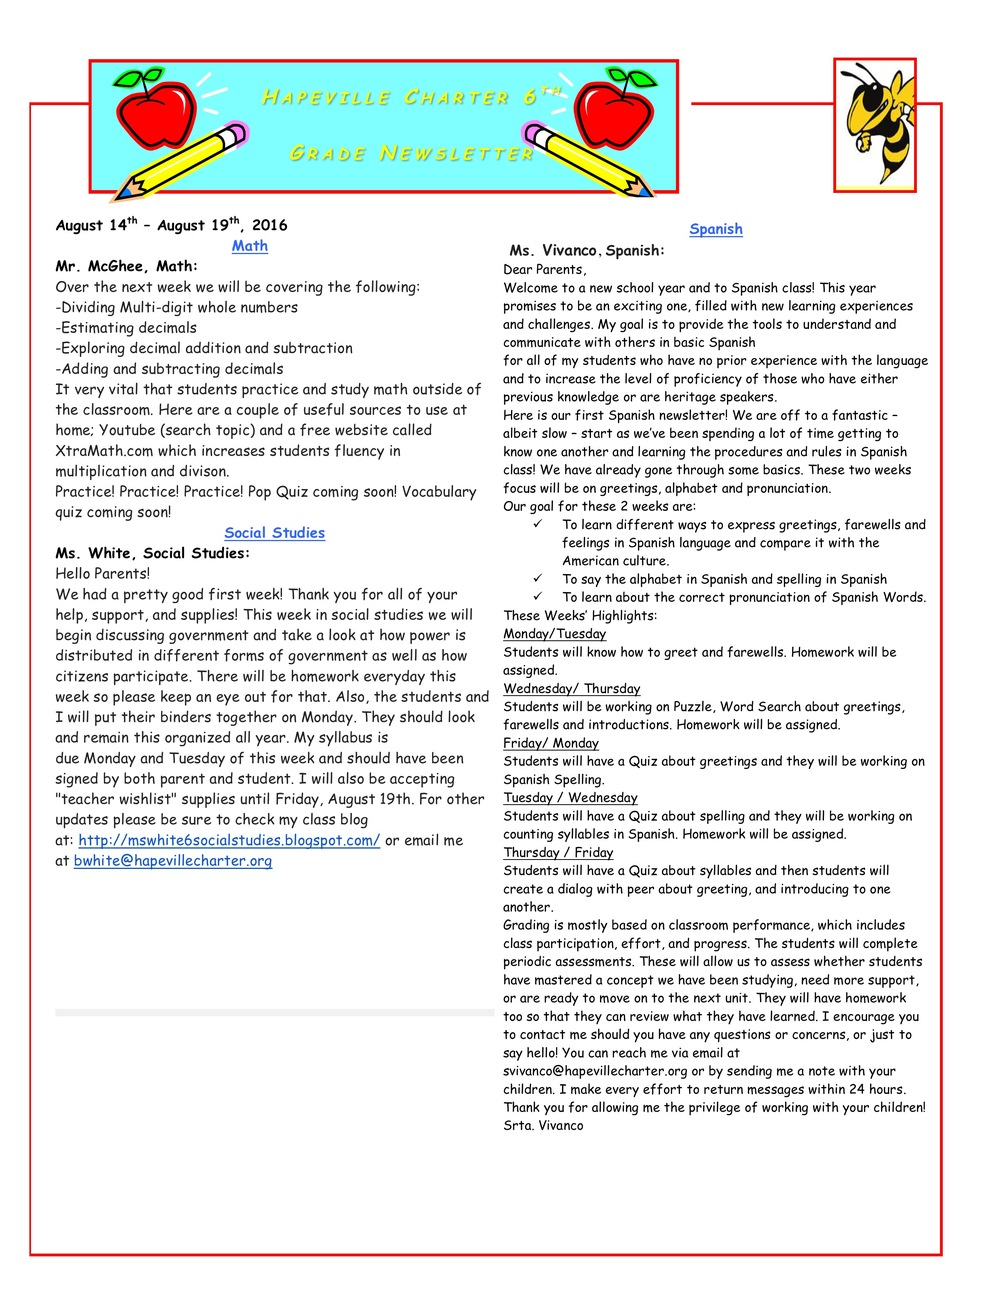 Newsletter Image6th Grade Newsletter 8-15-2016.jpeg